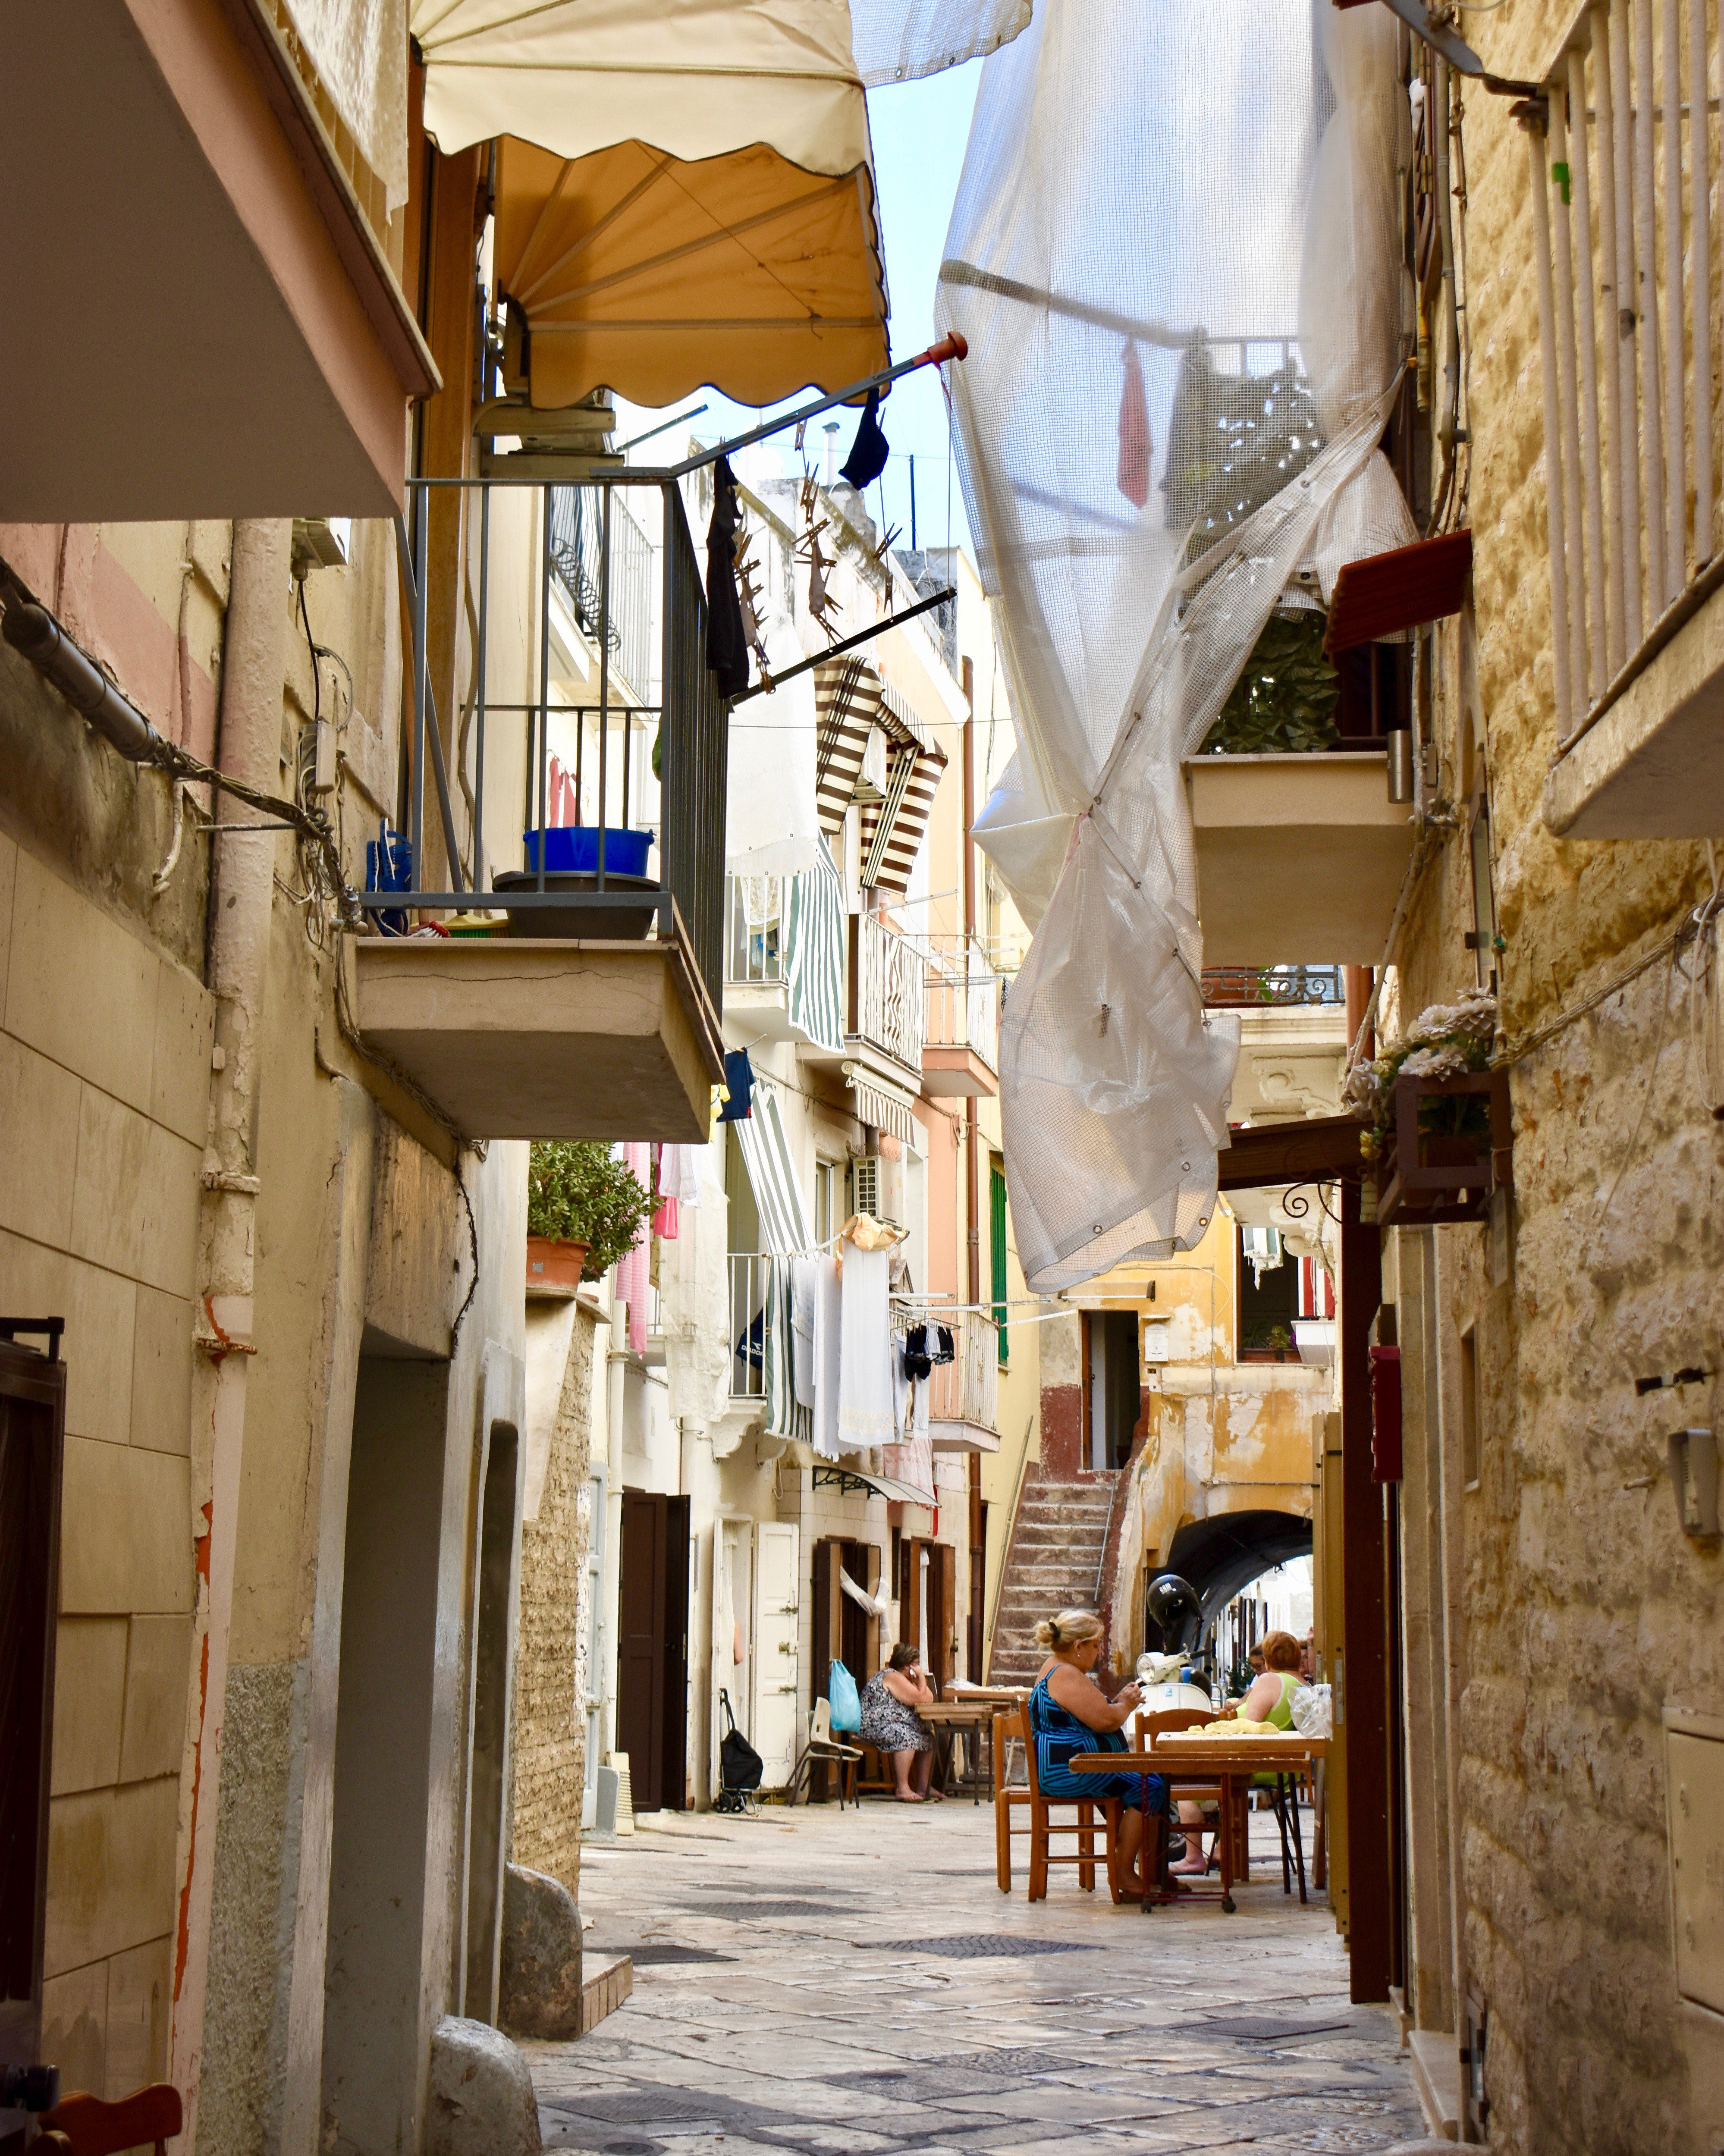 Vertical shot of a narrow alleyway with people working at tables at its far end.